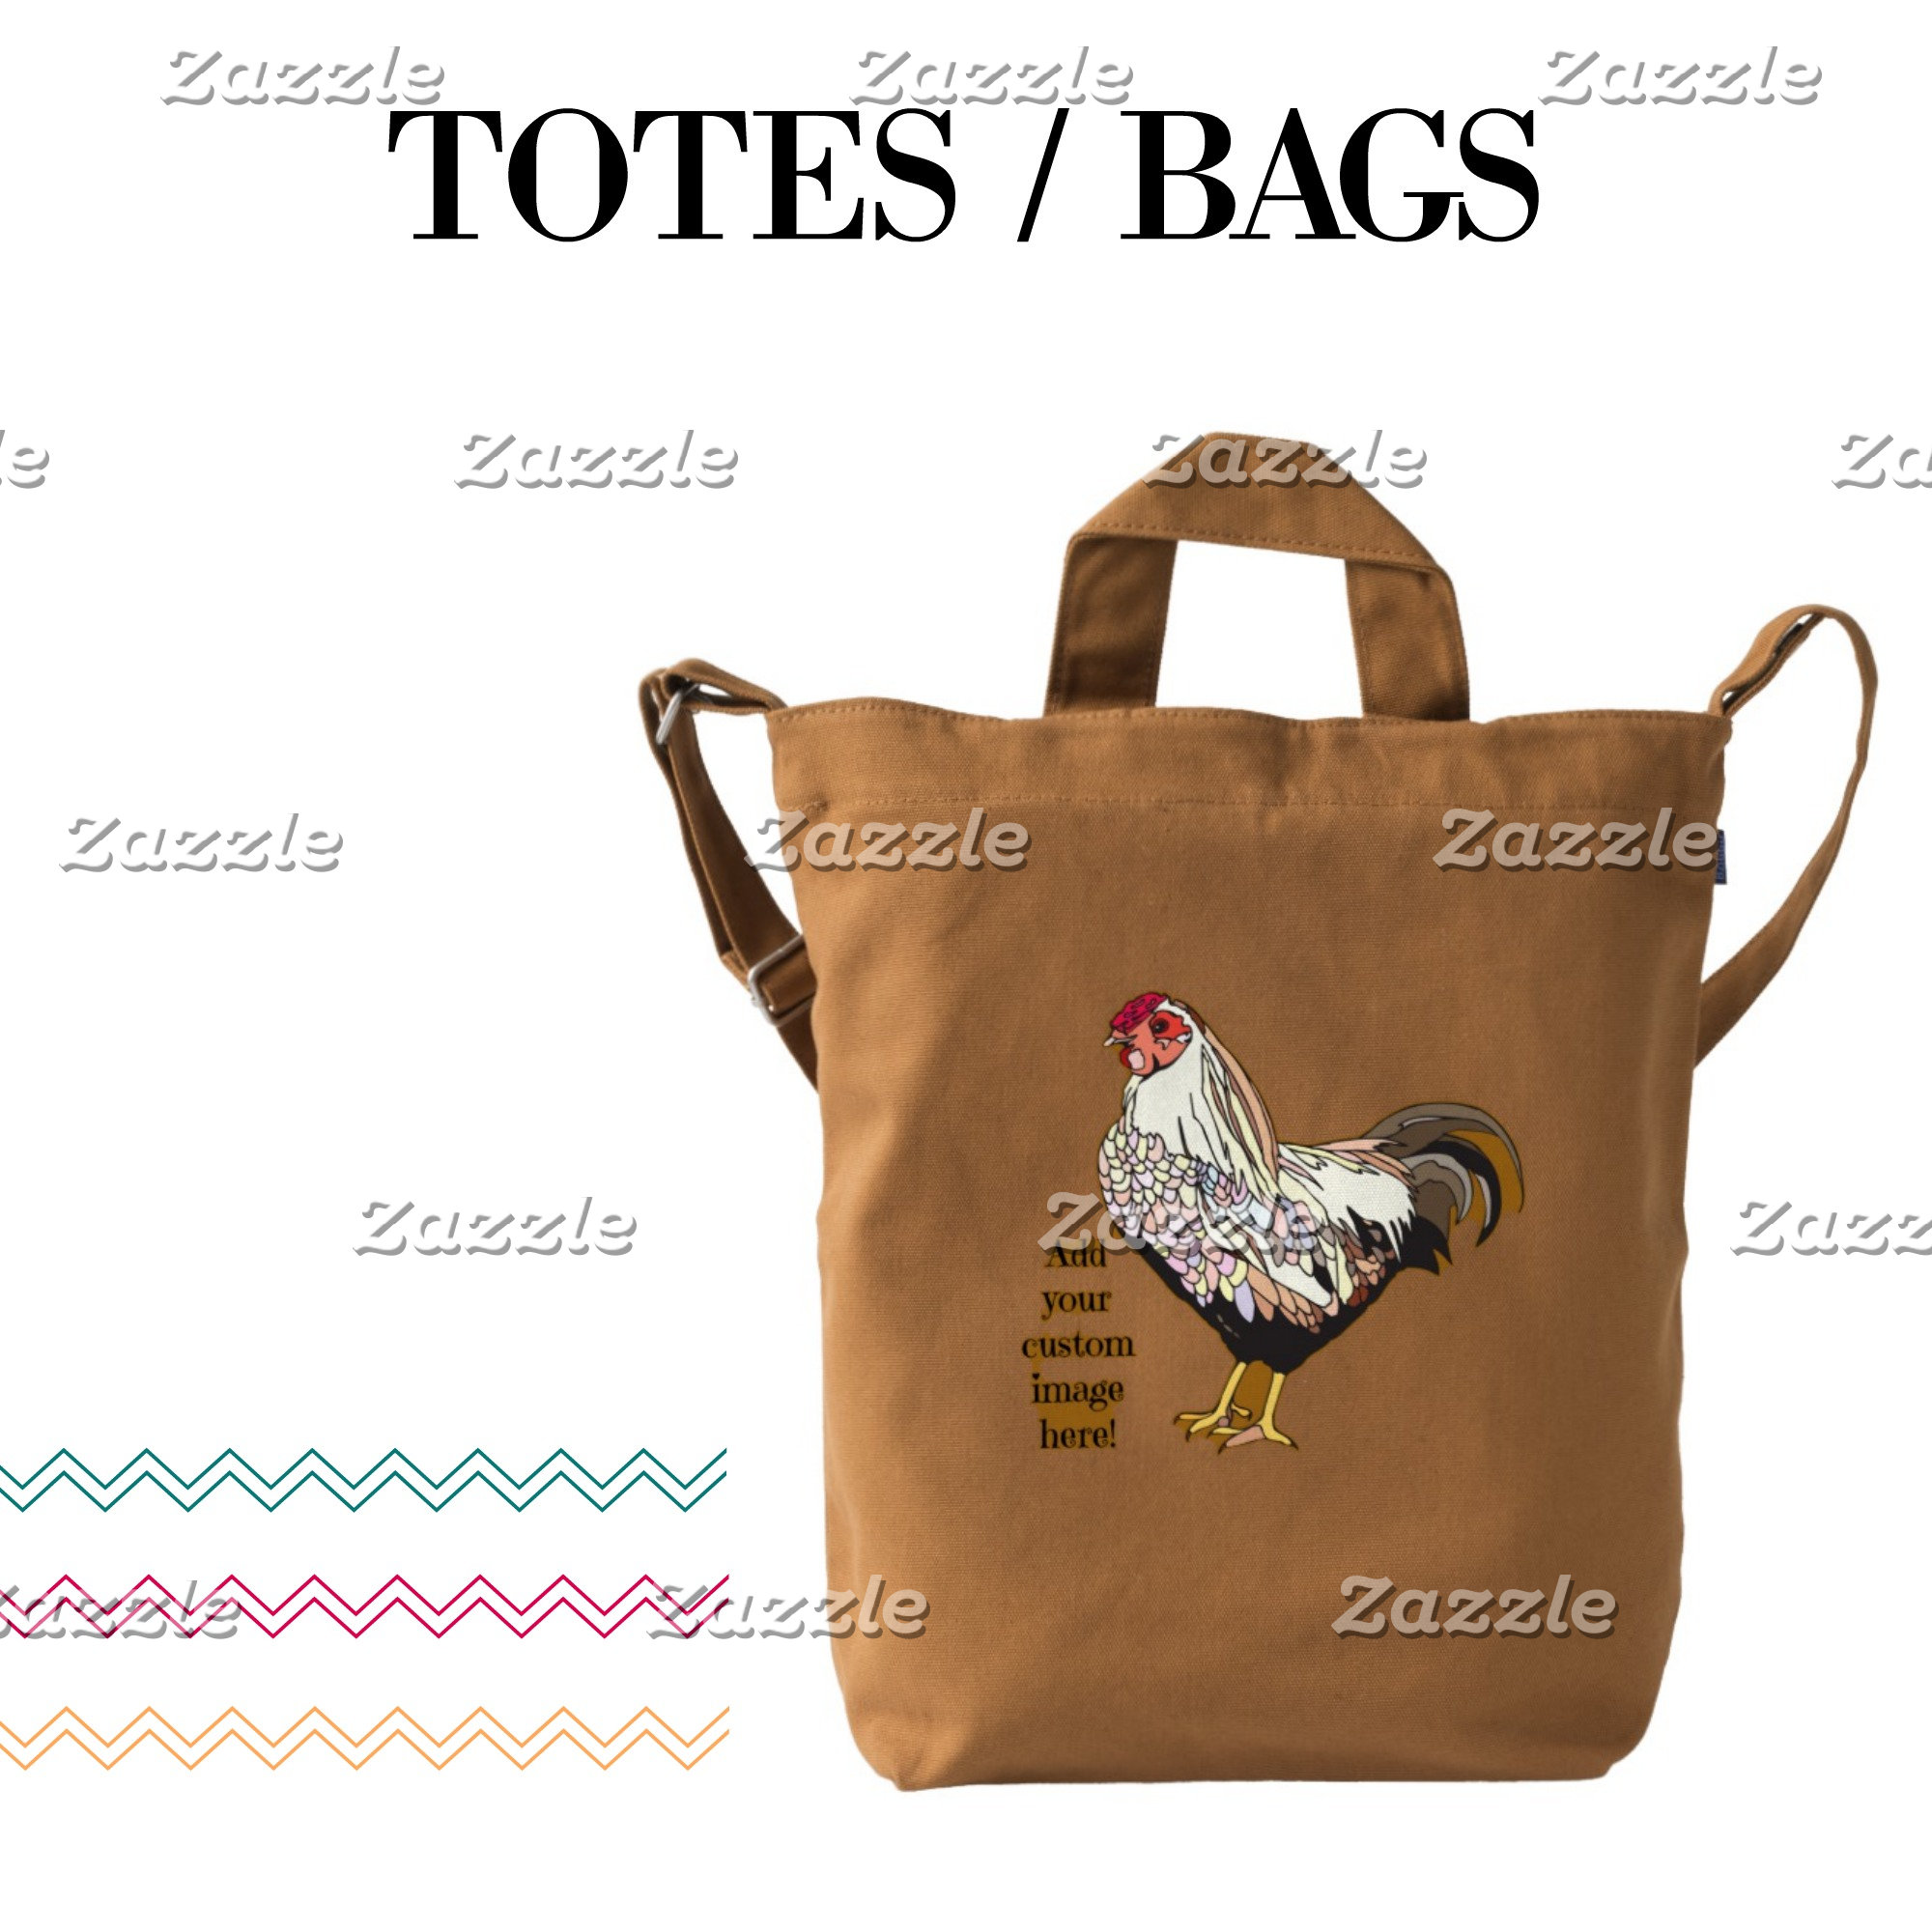 TOTES / BAGS